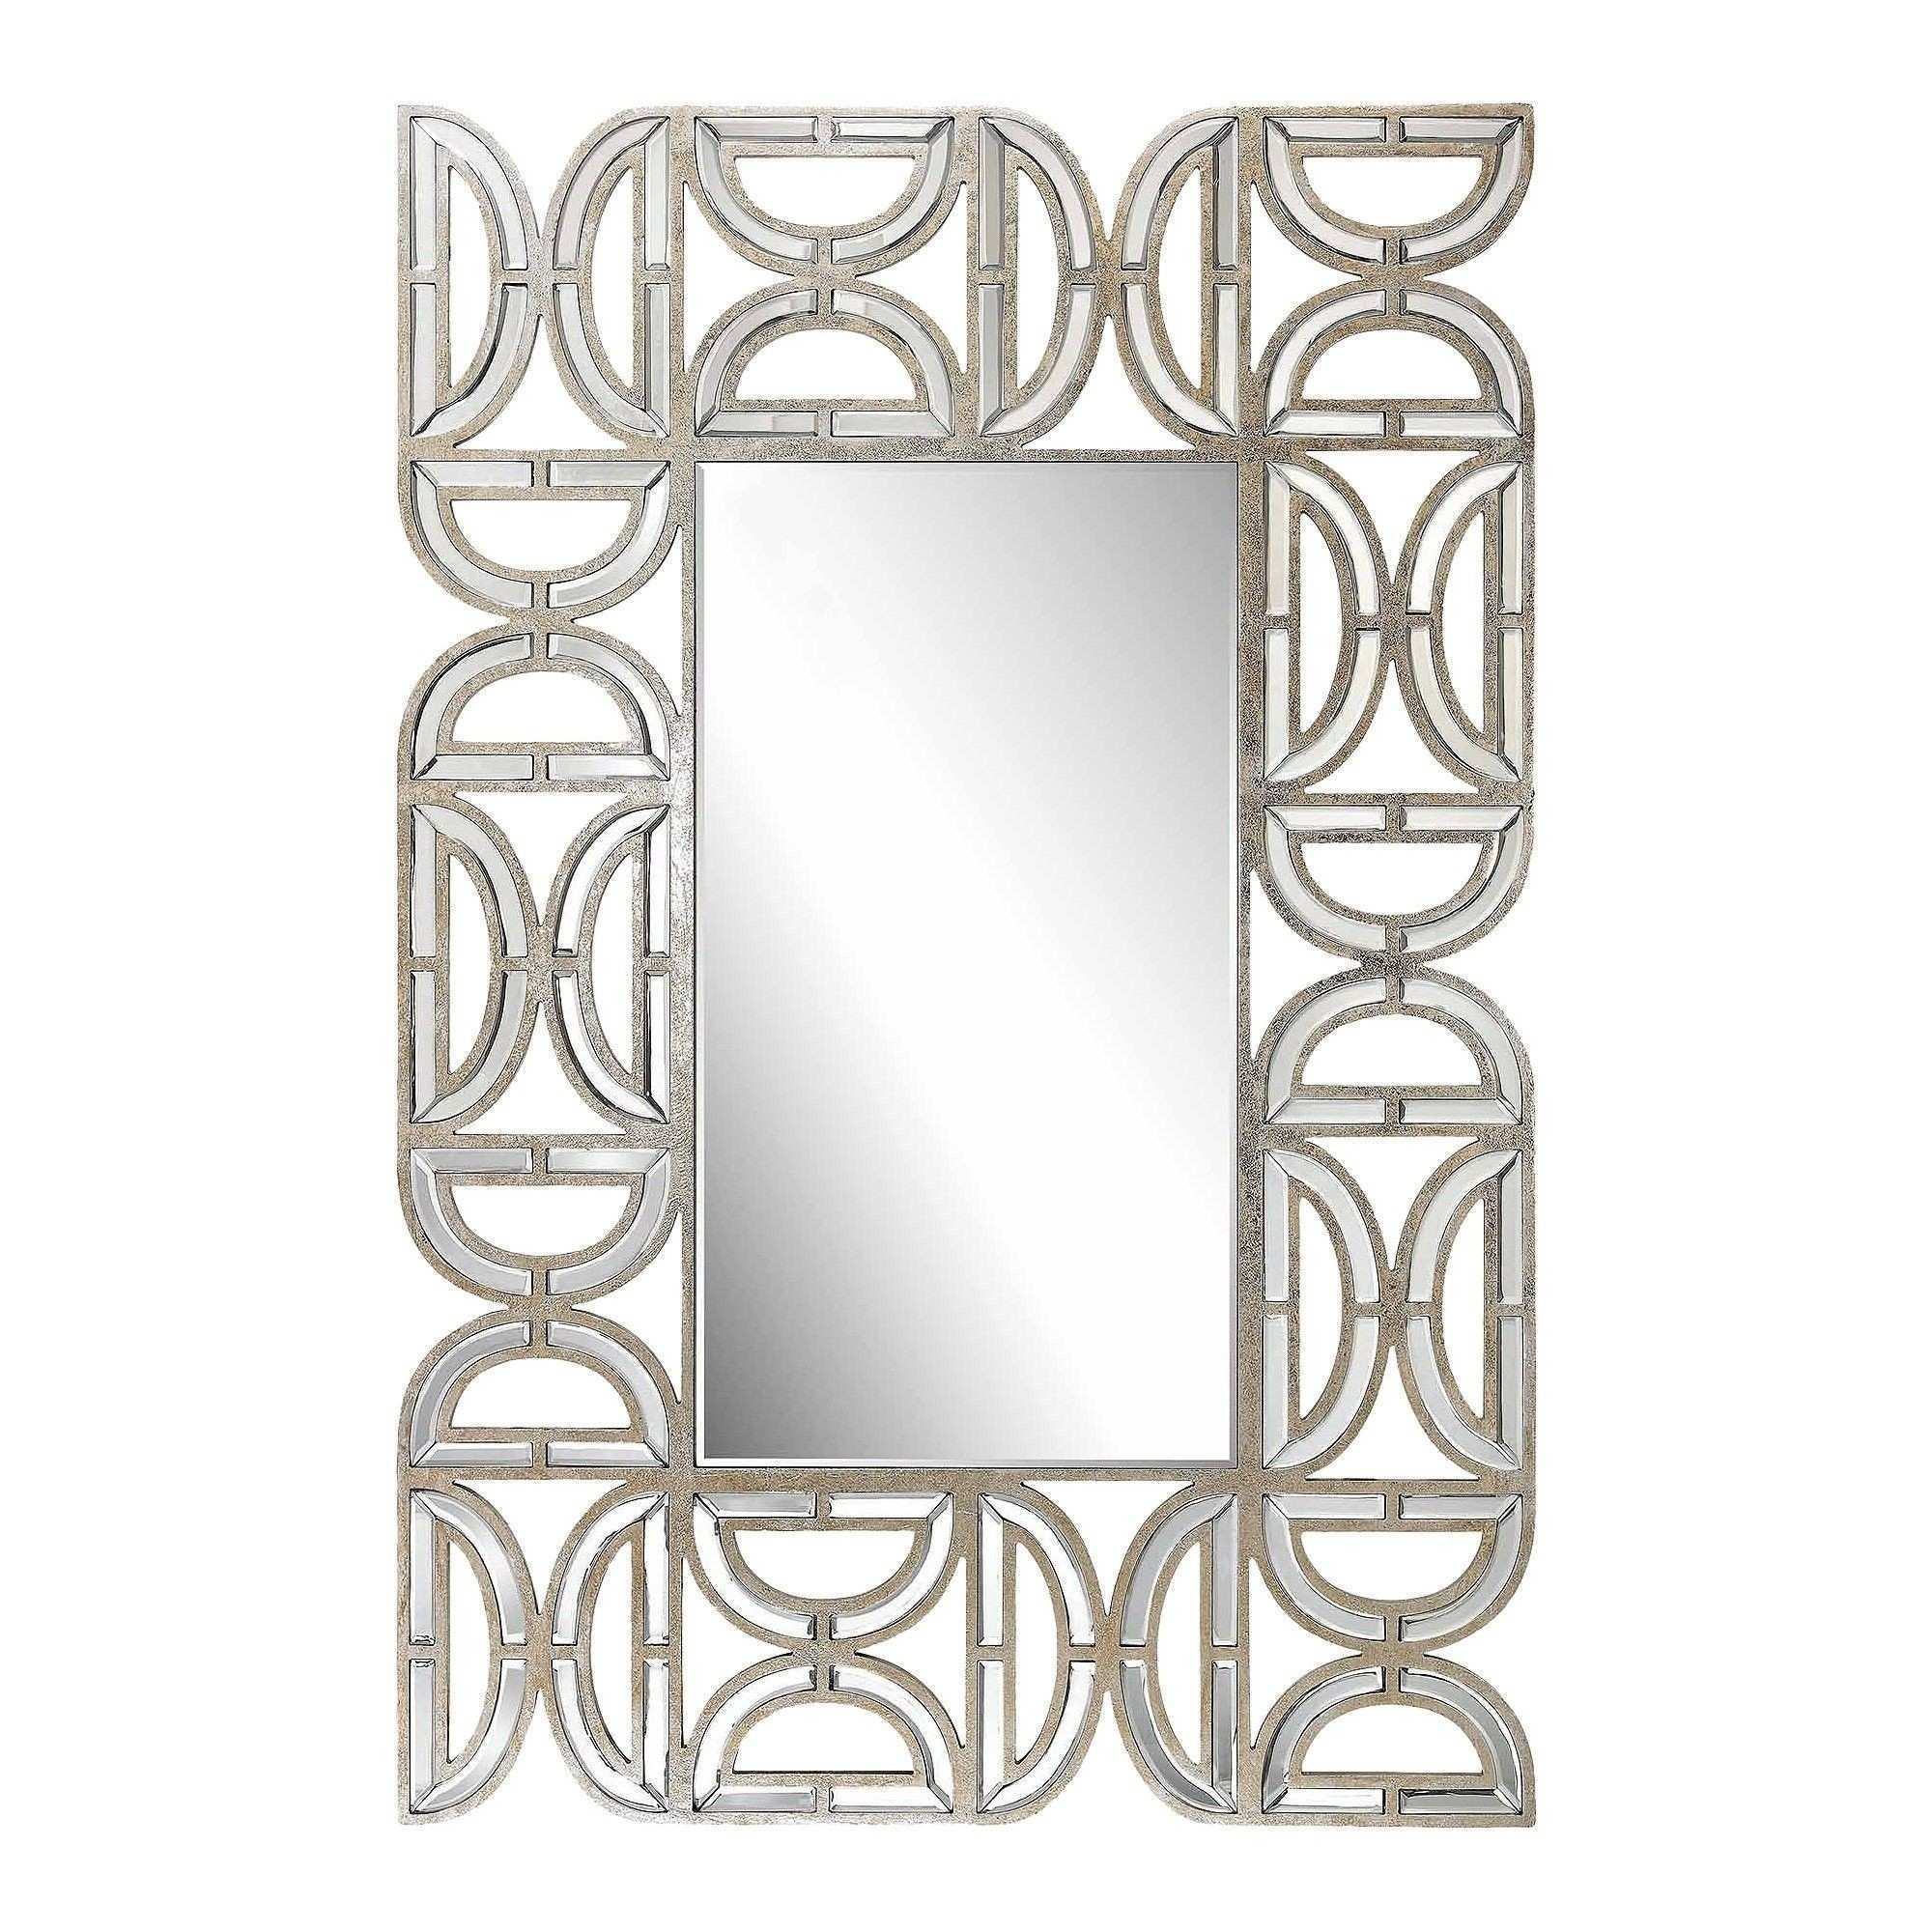 Inexpensive Wall Mirrors Best Of Home Wall Frames Inspirational 41 Luxury Ideas for Bathroom Decor